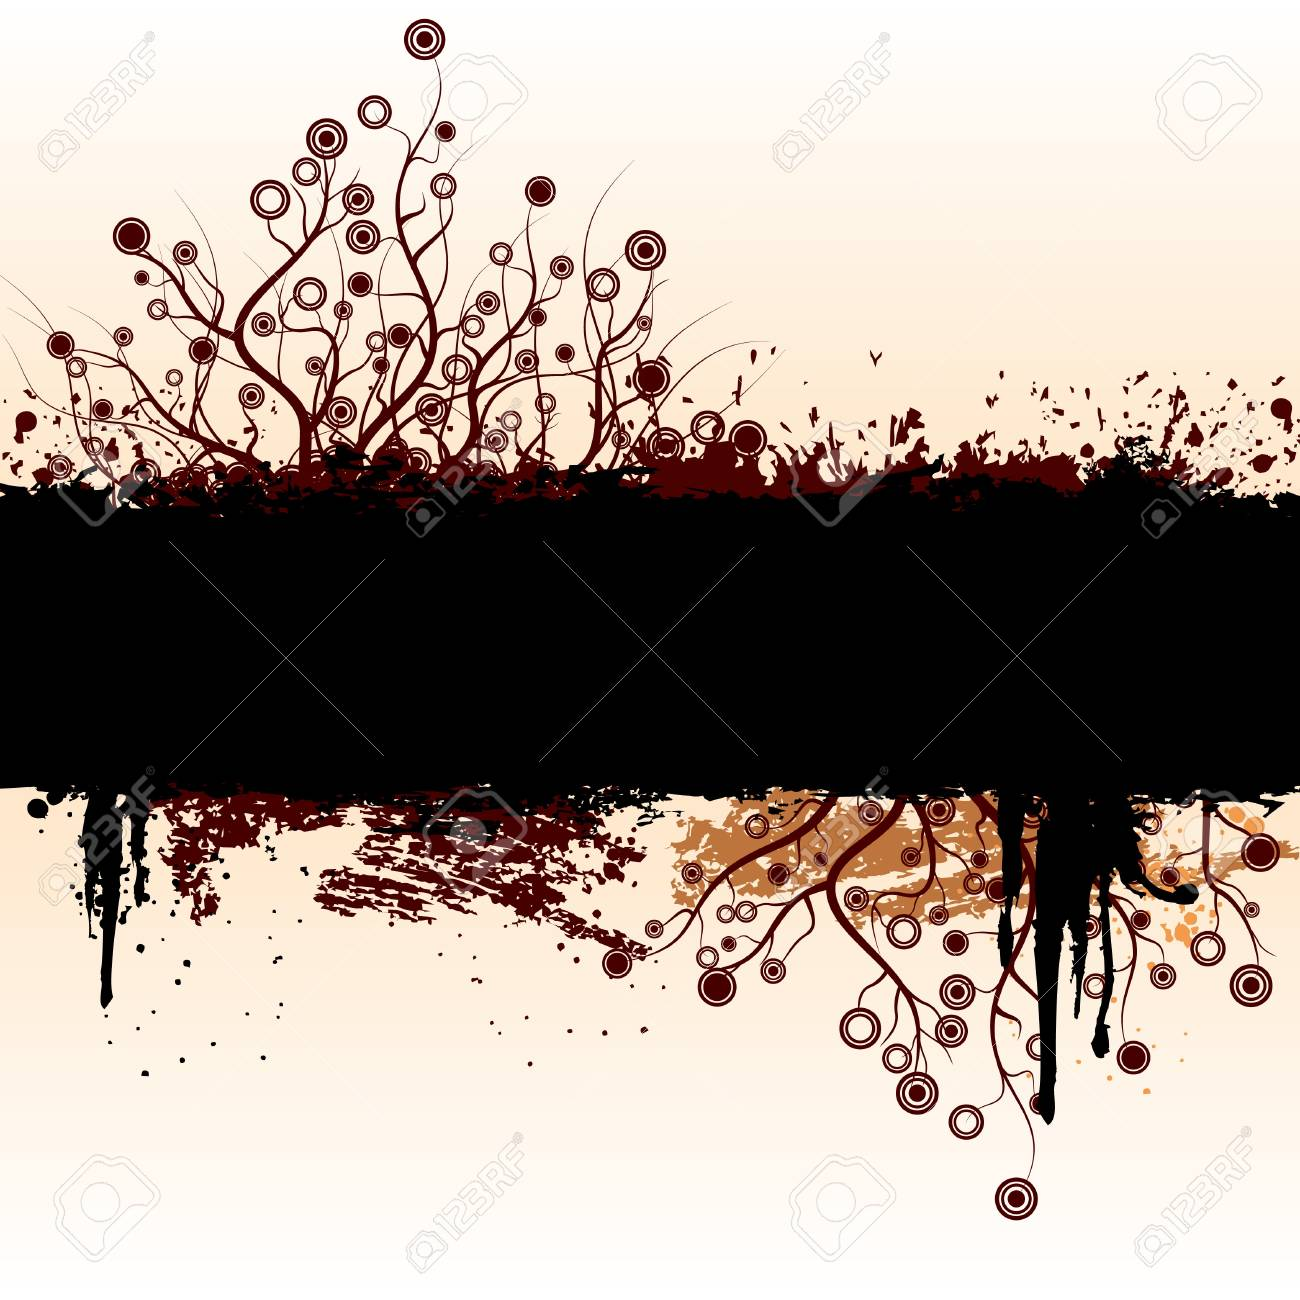 Grunge background Stock Vector - 13335278